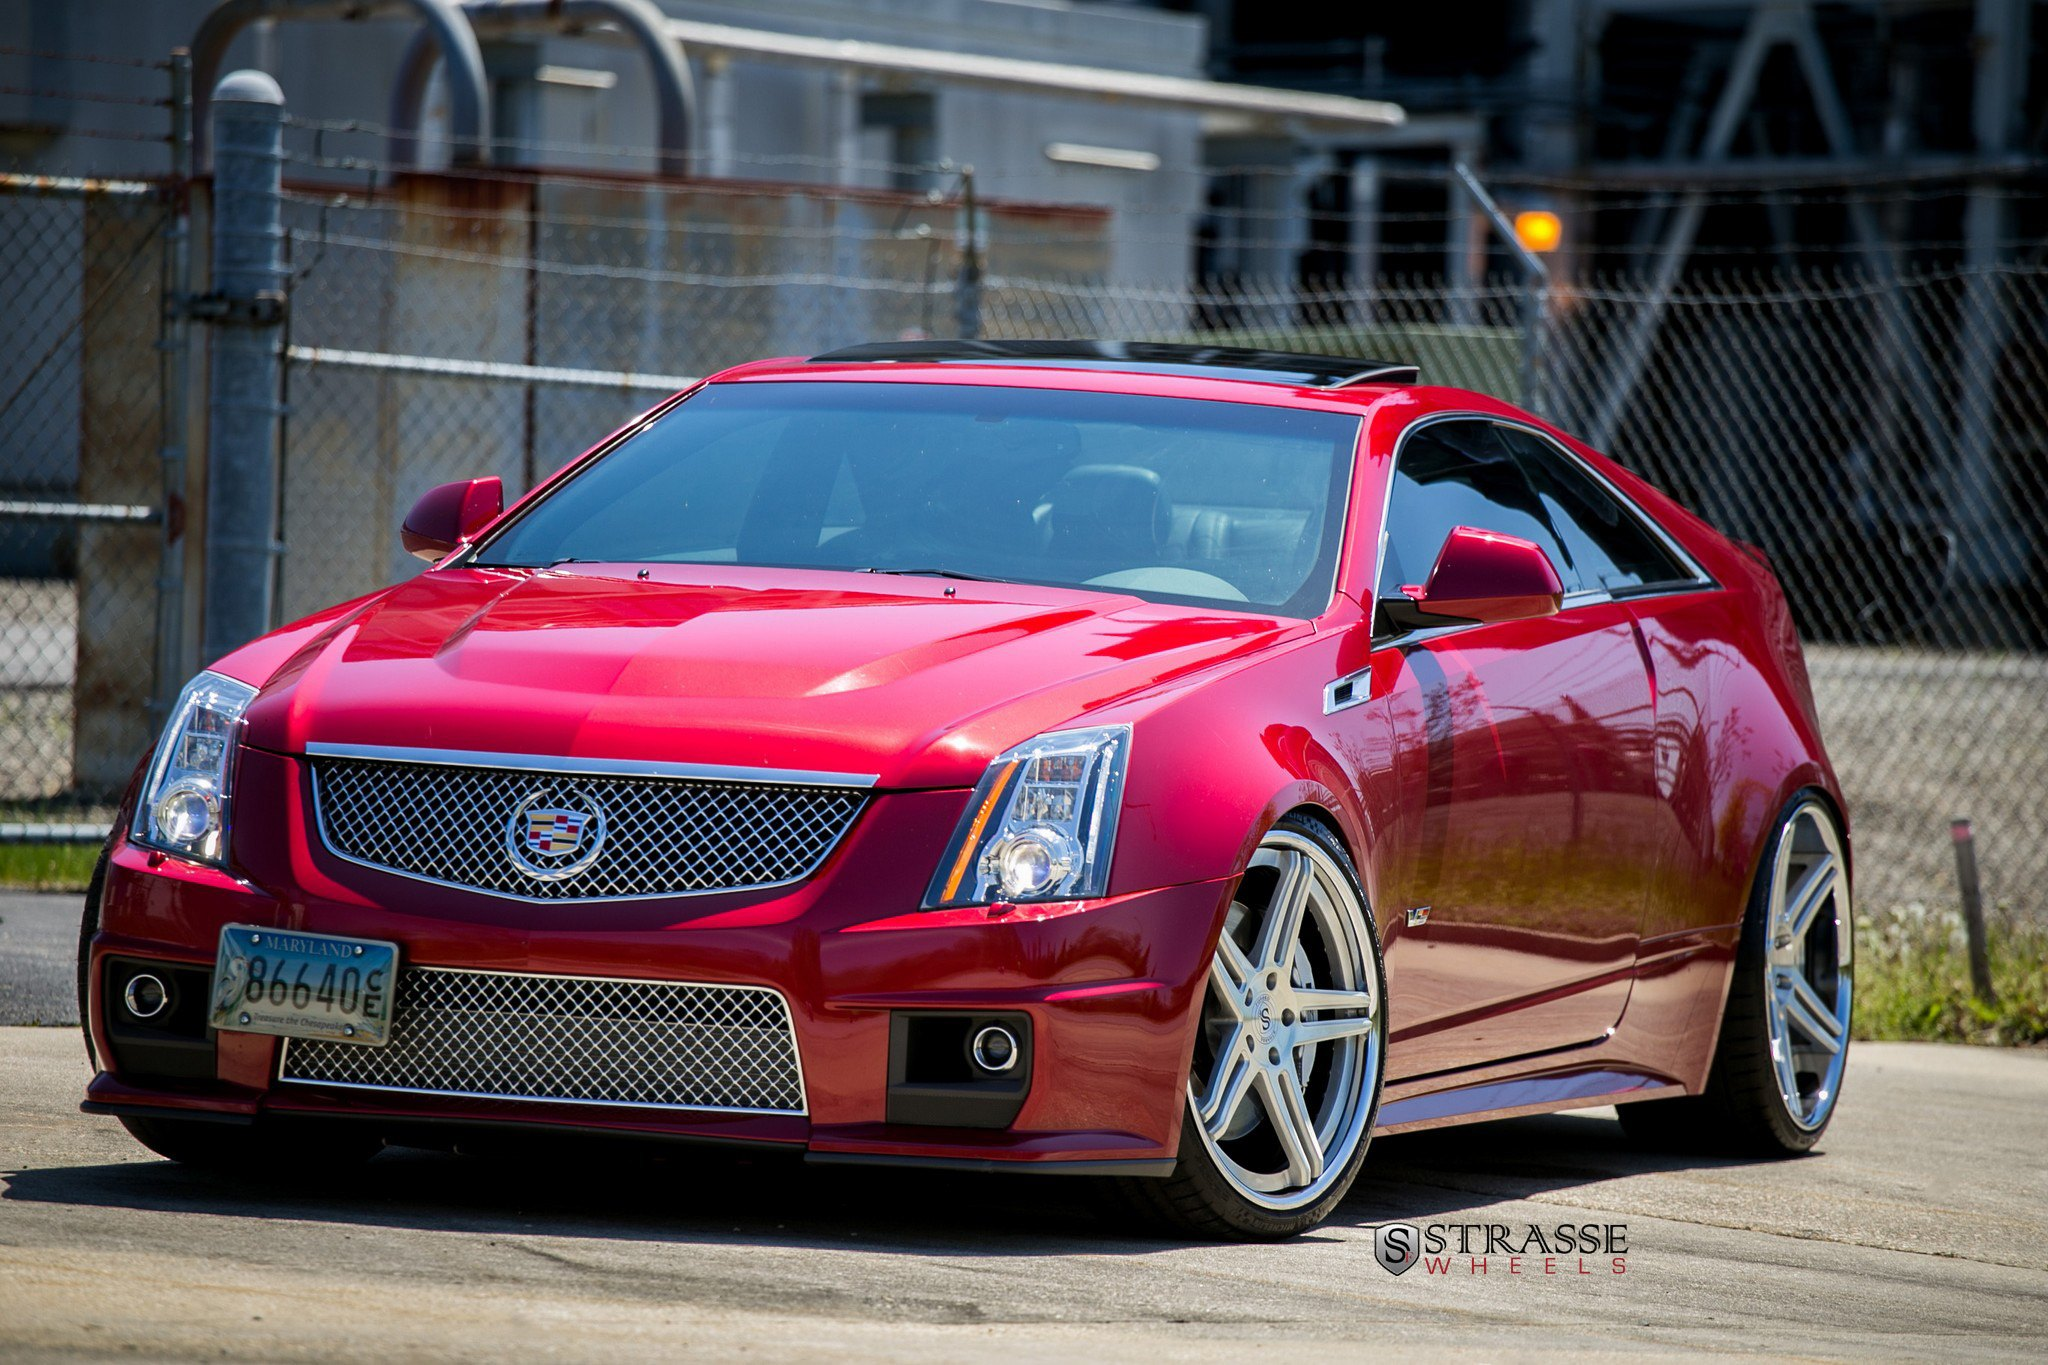 cts of c custom cadillac cc in texas for listings antonio picture view sale std com large classiccars san